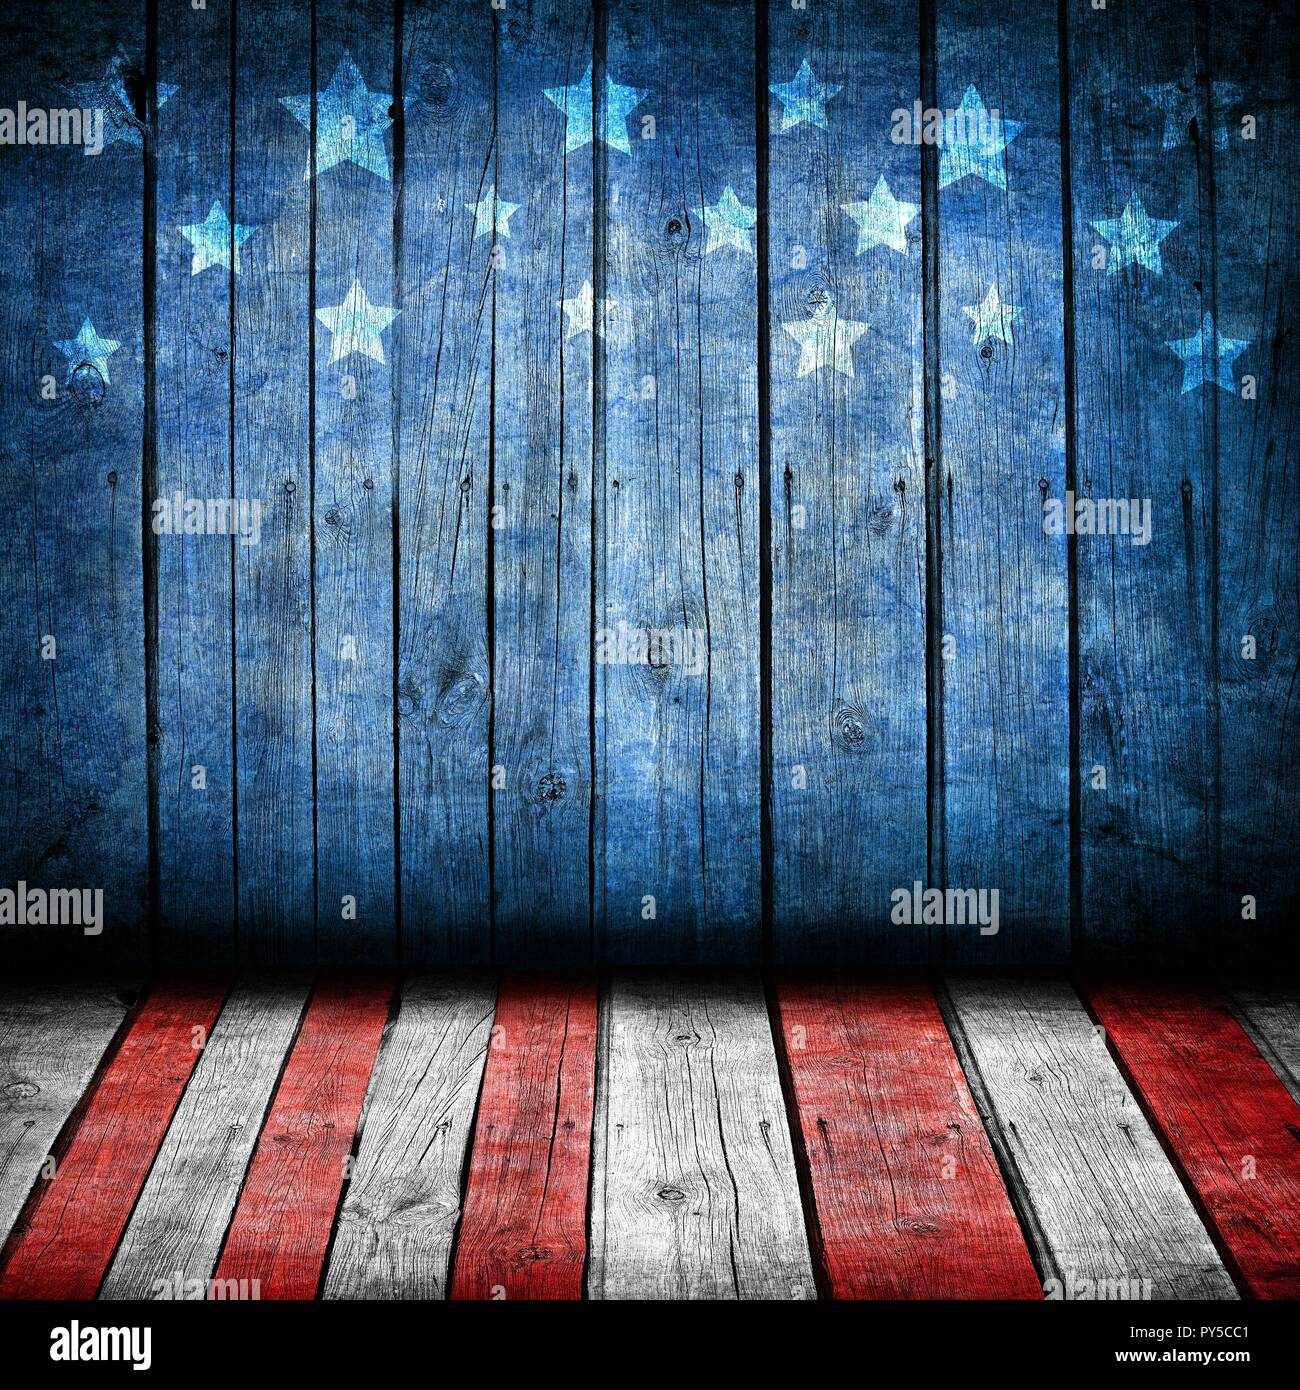 Usa Style Background Empty Wooden Table For Display Montages Stock Photo Alamy